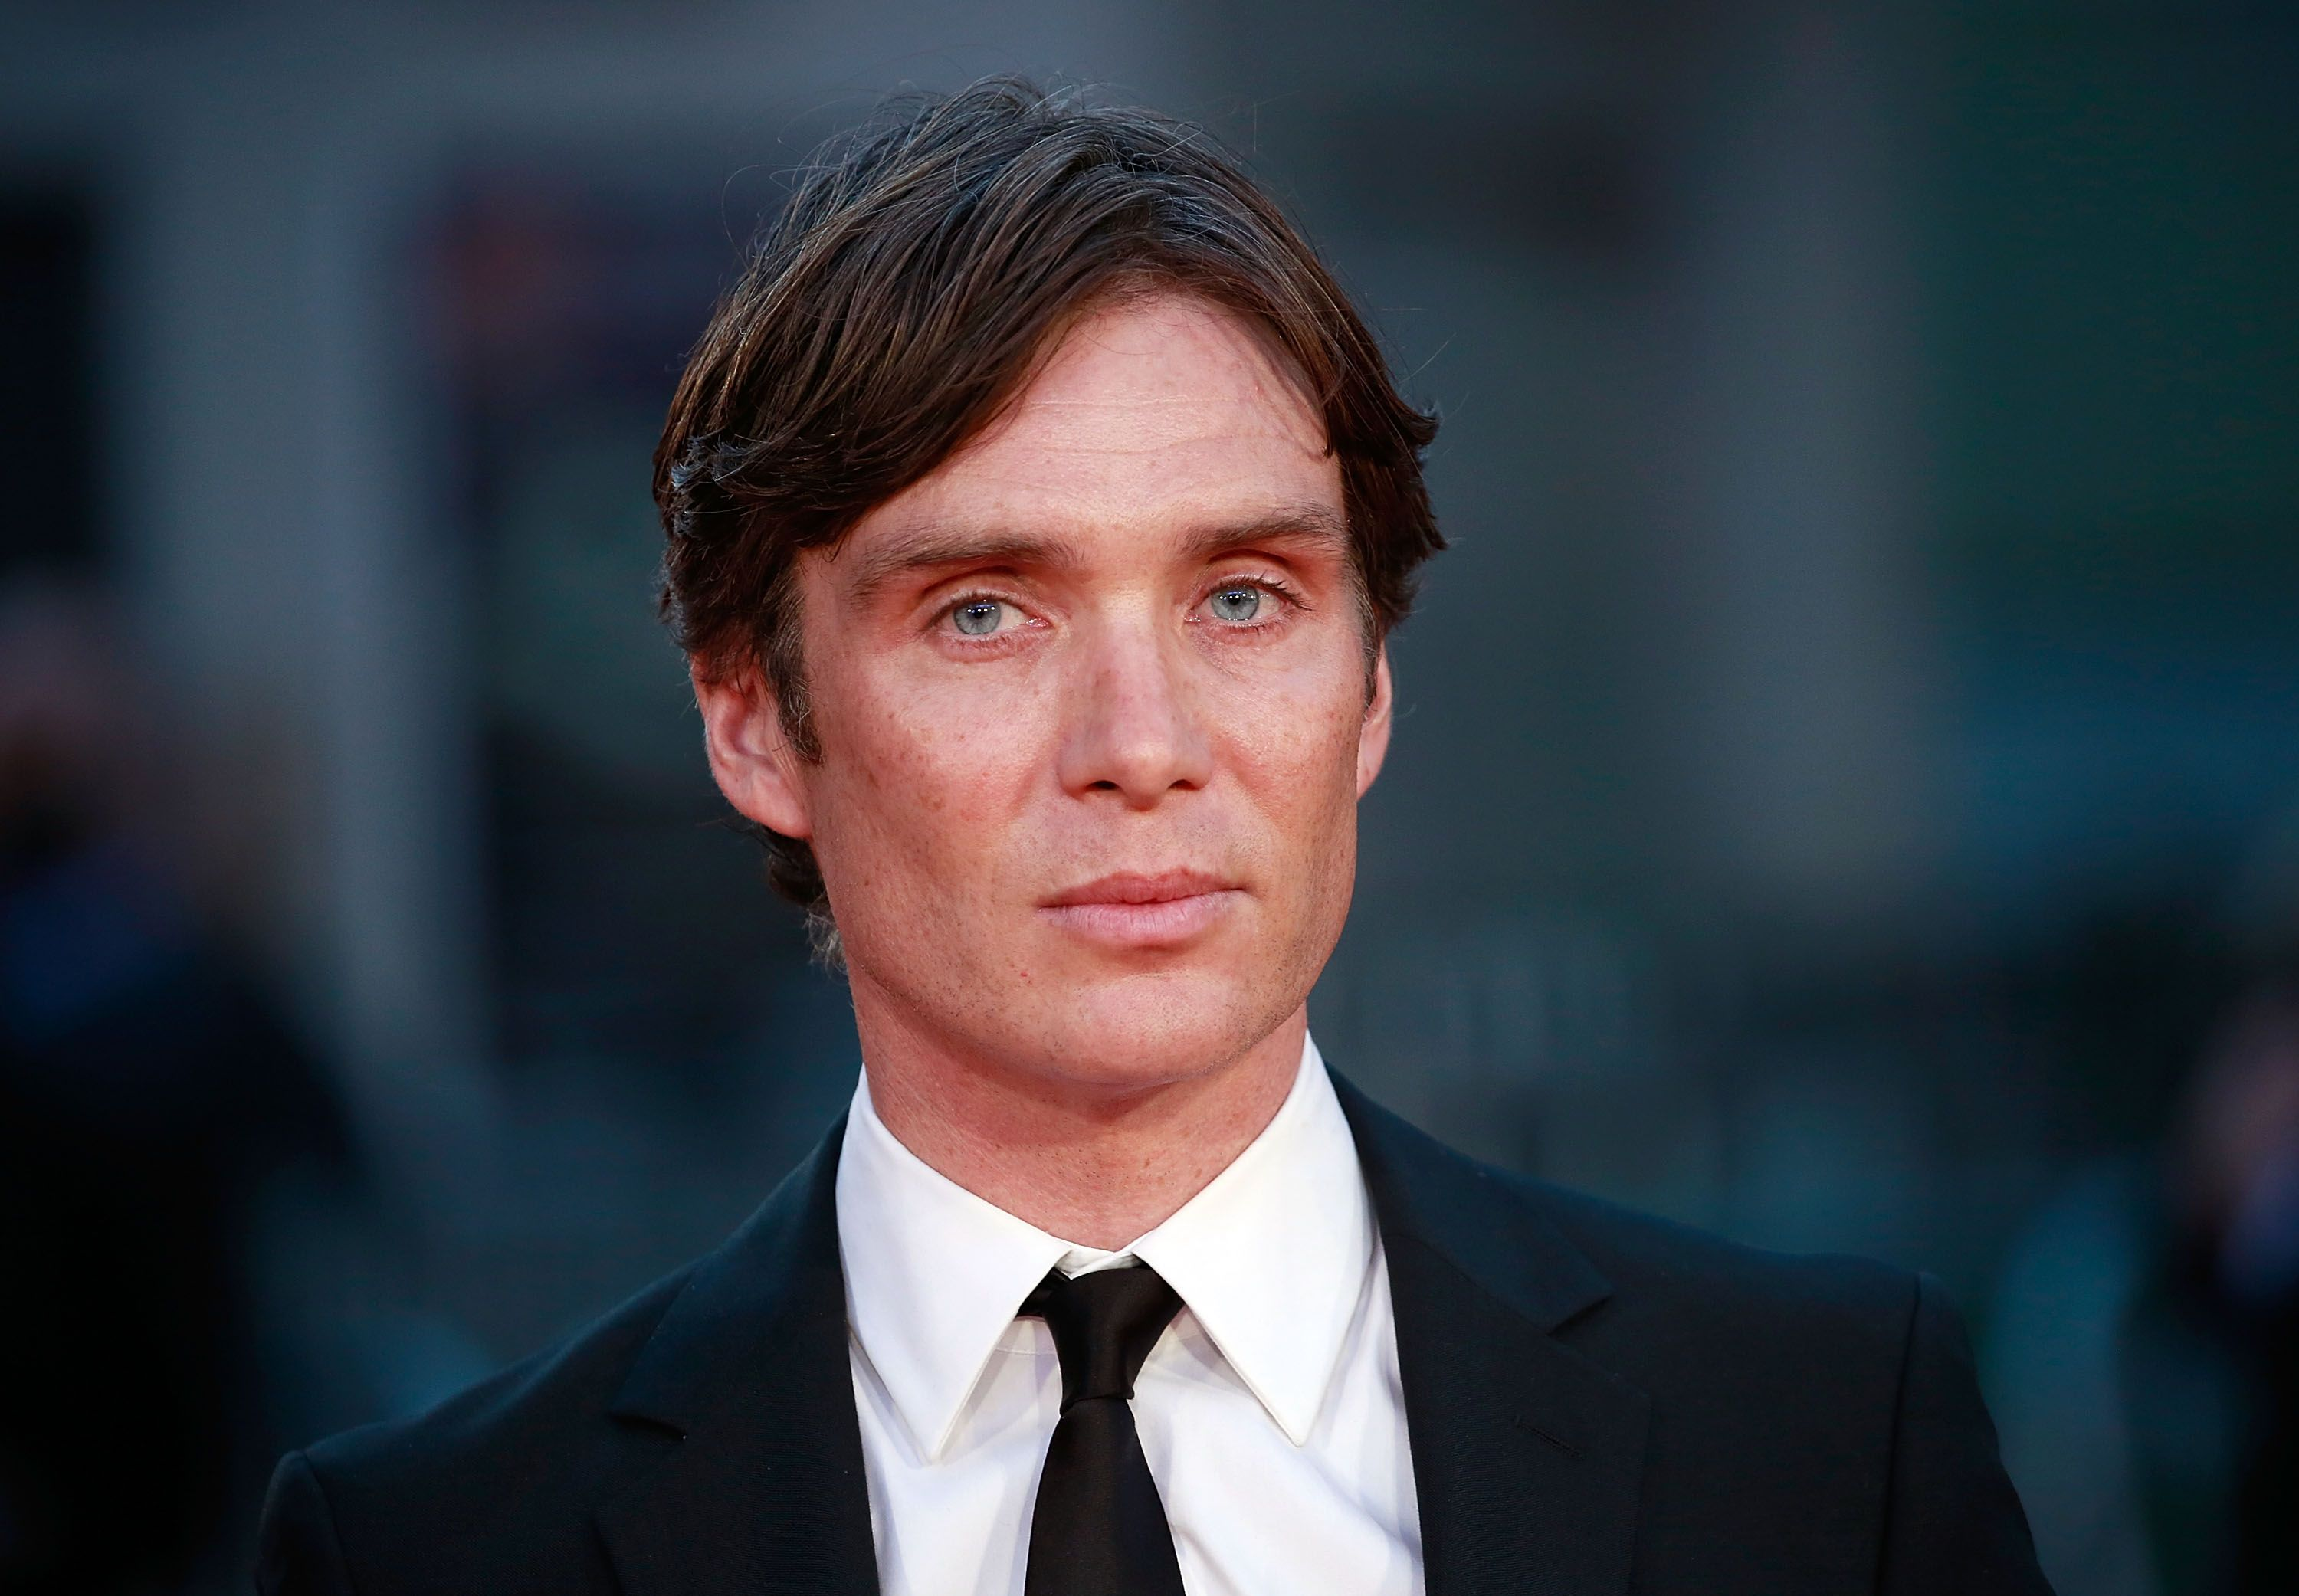 Peaky Blinders' Cillian Murphy Wants A Female James Bond